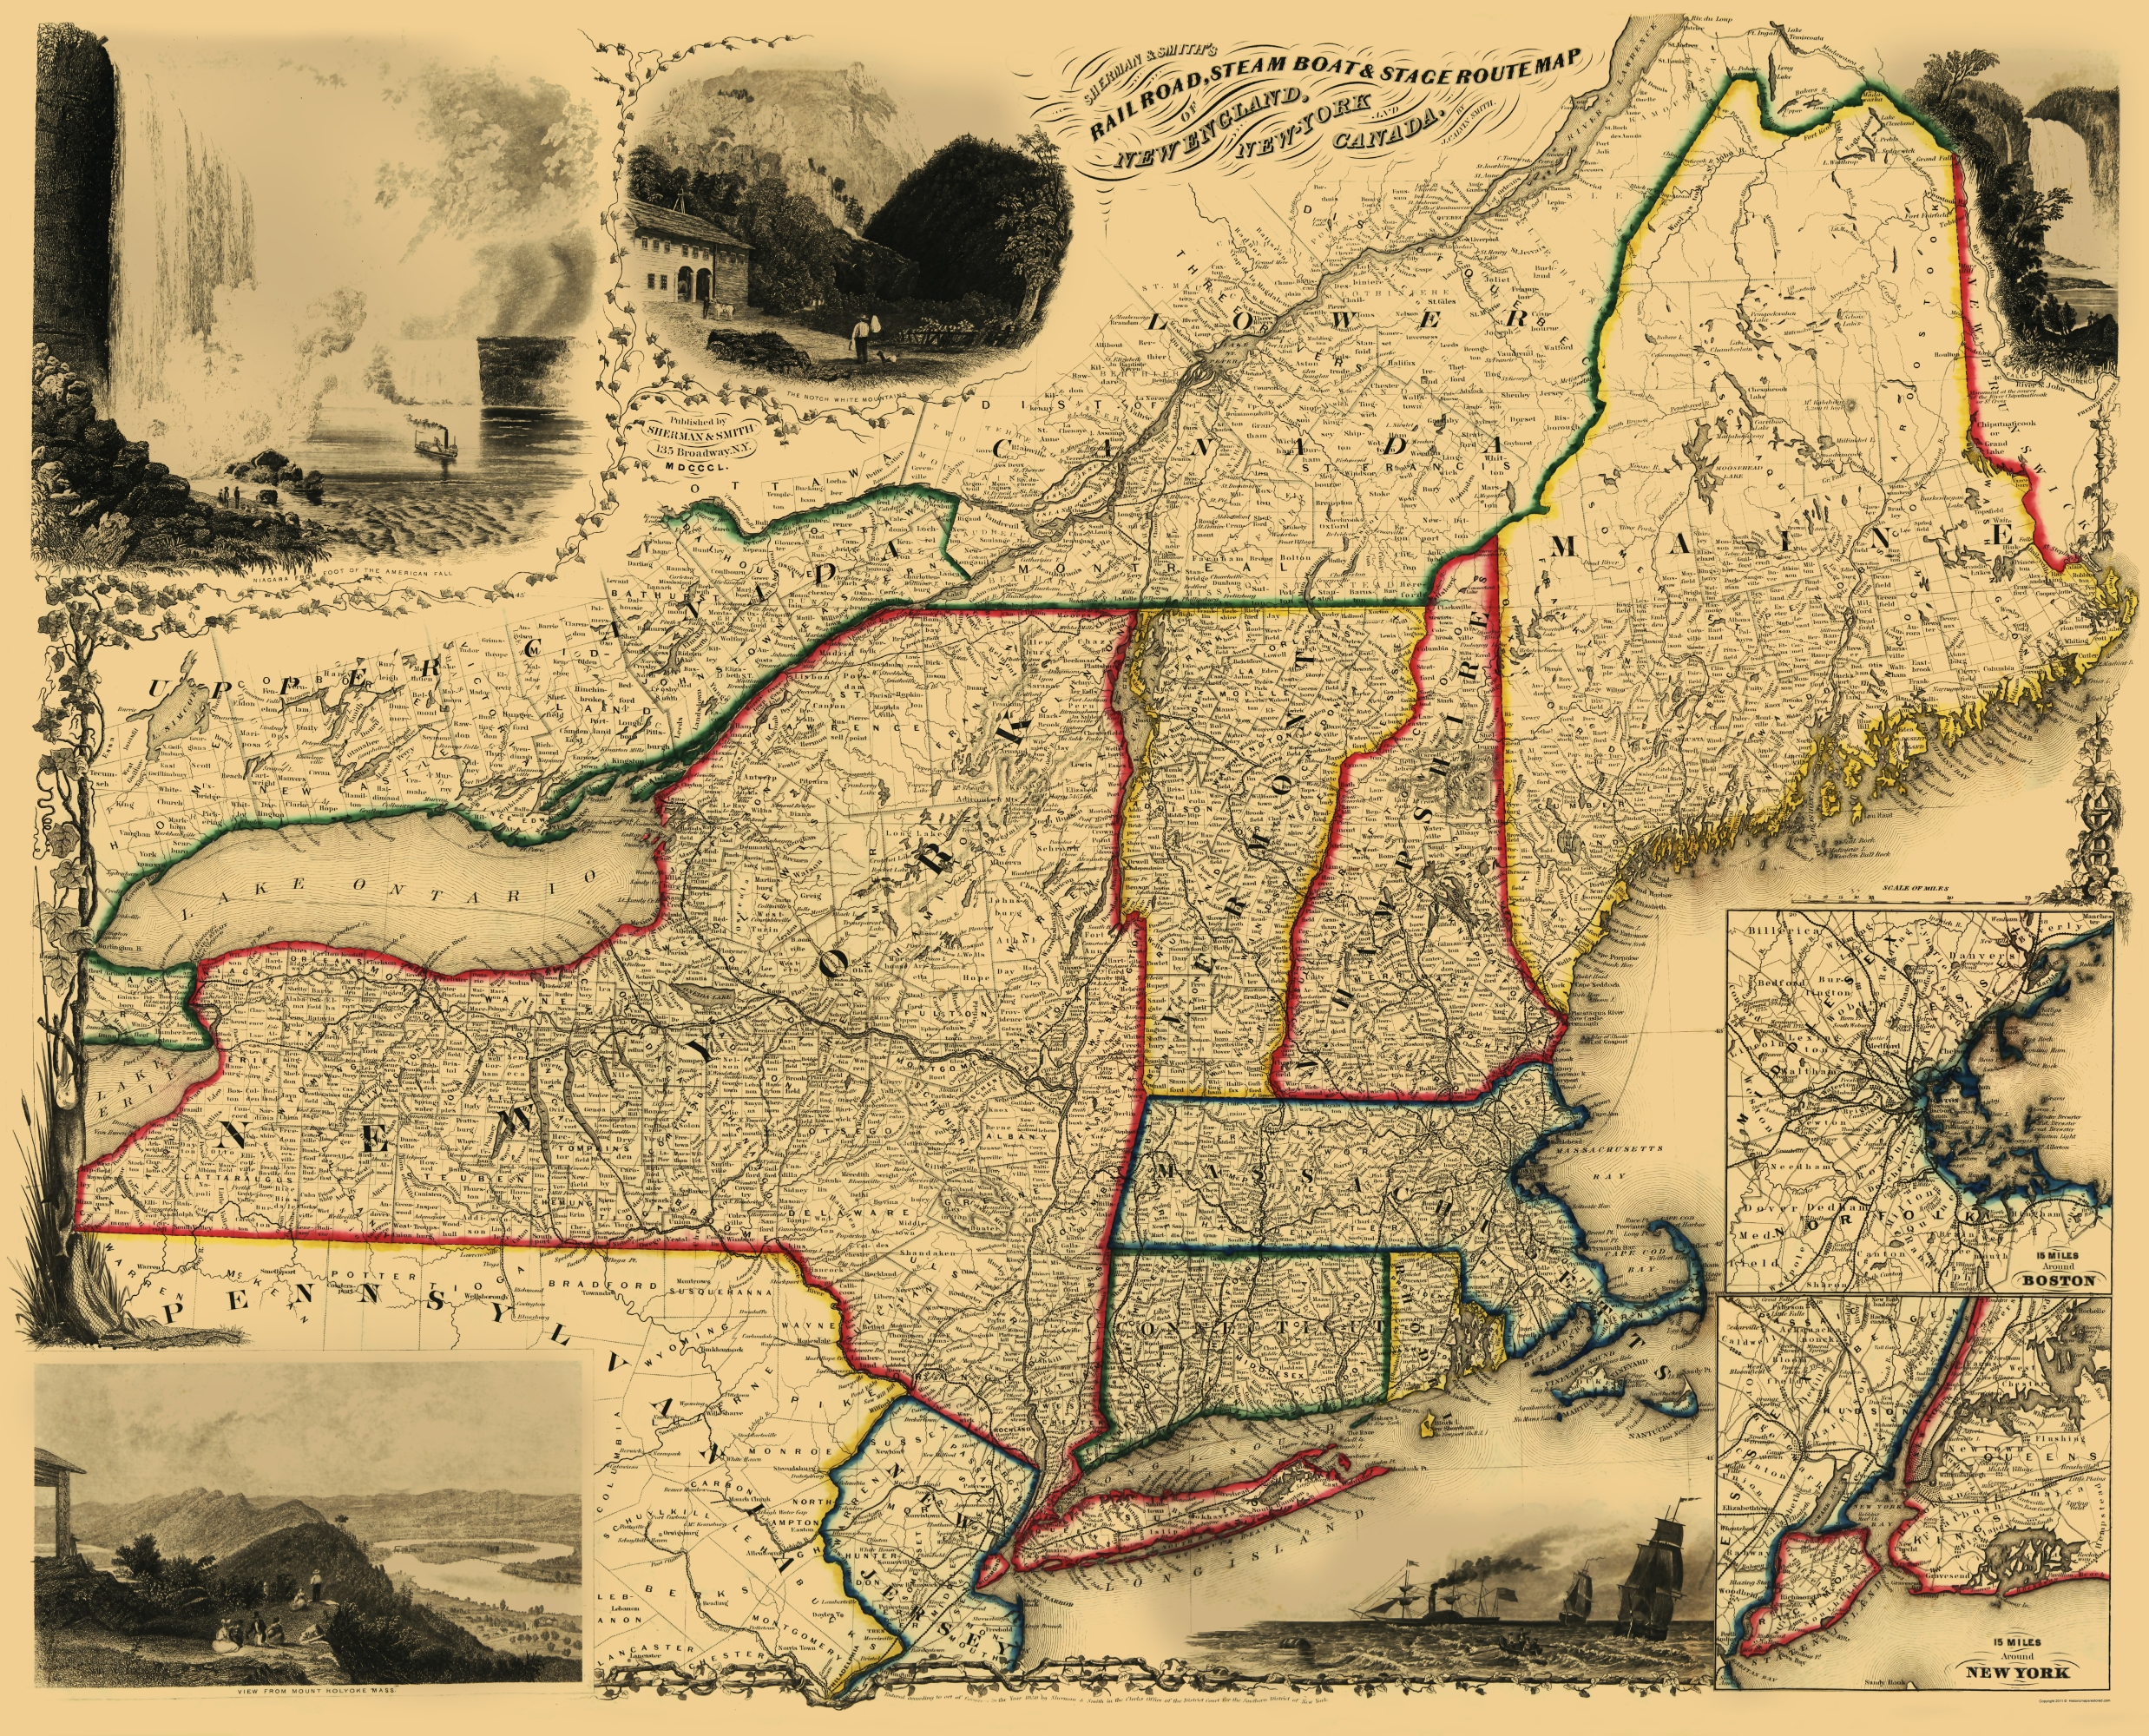 Map Of New York 1850.Old Travel Map Railroad Steam Boat Stage Routes Sherman 1850 23 X 28 47